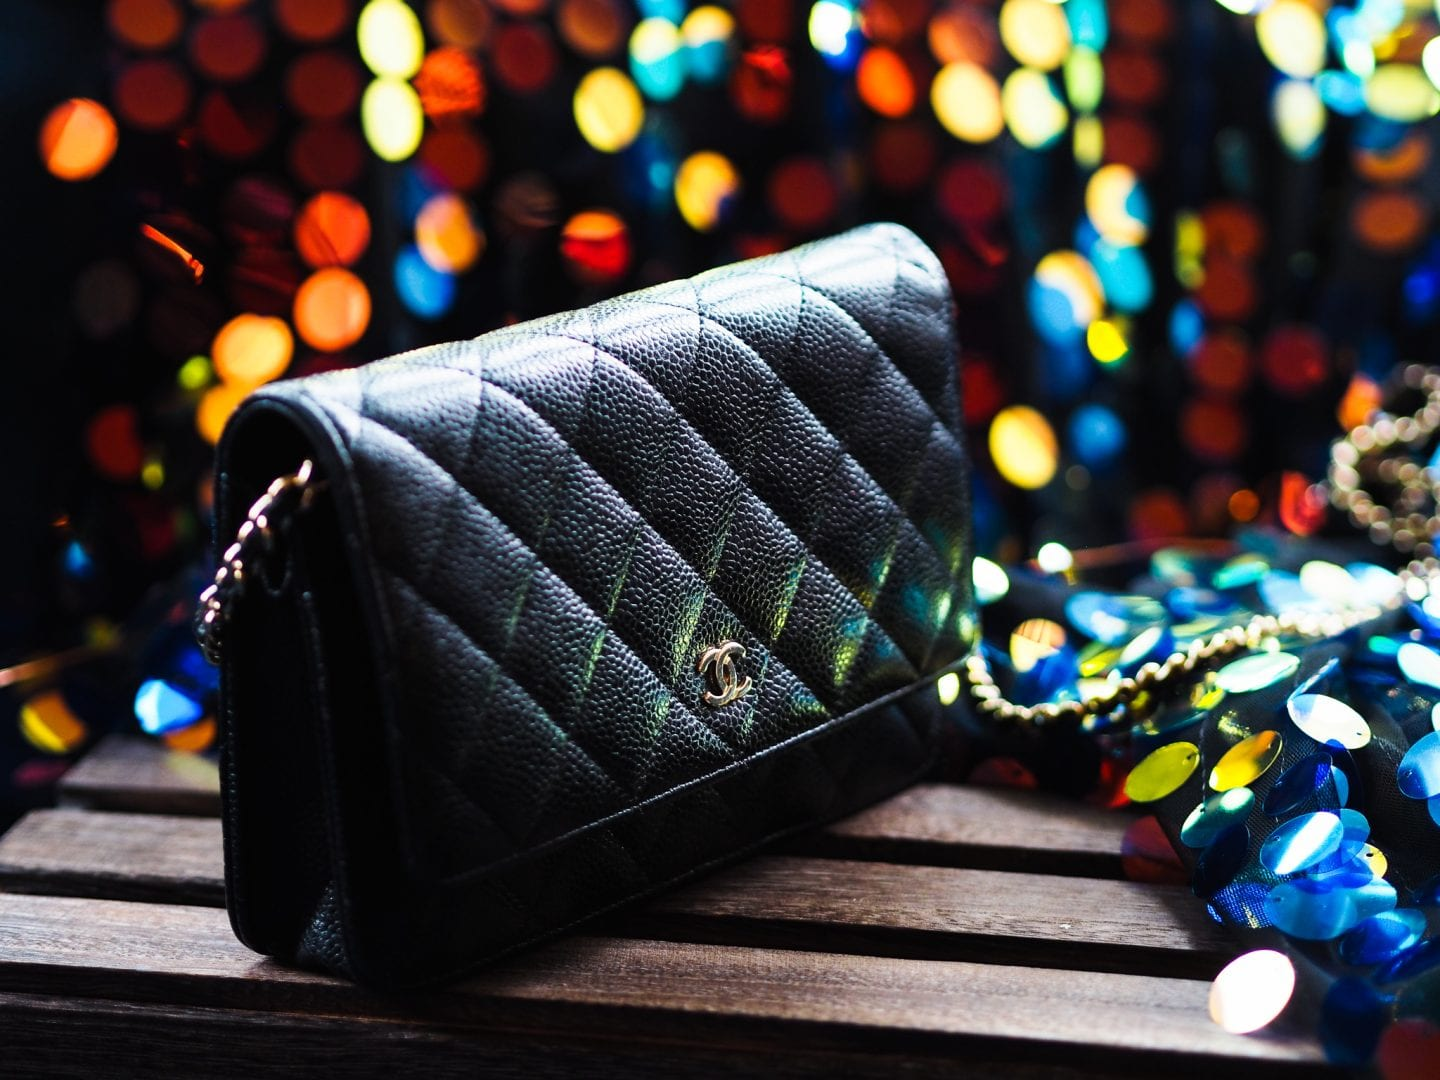 chanel-WOC-wallet-on-chain-bag-review